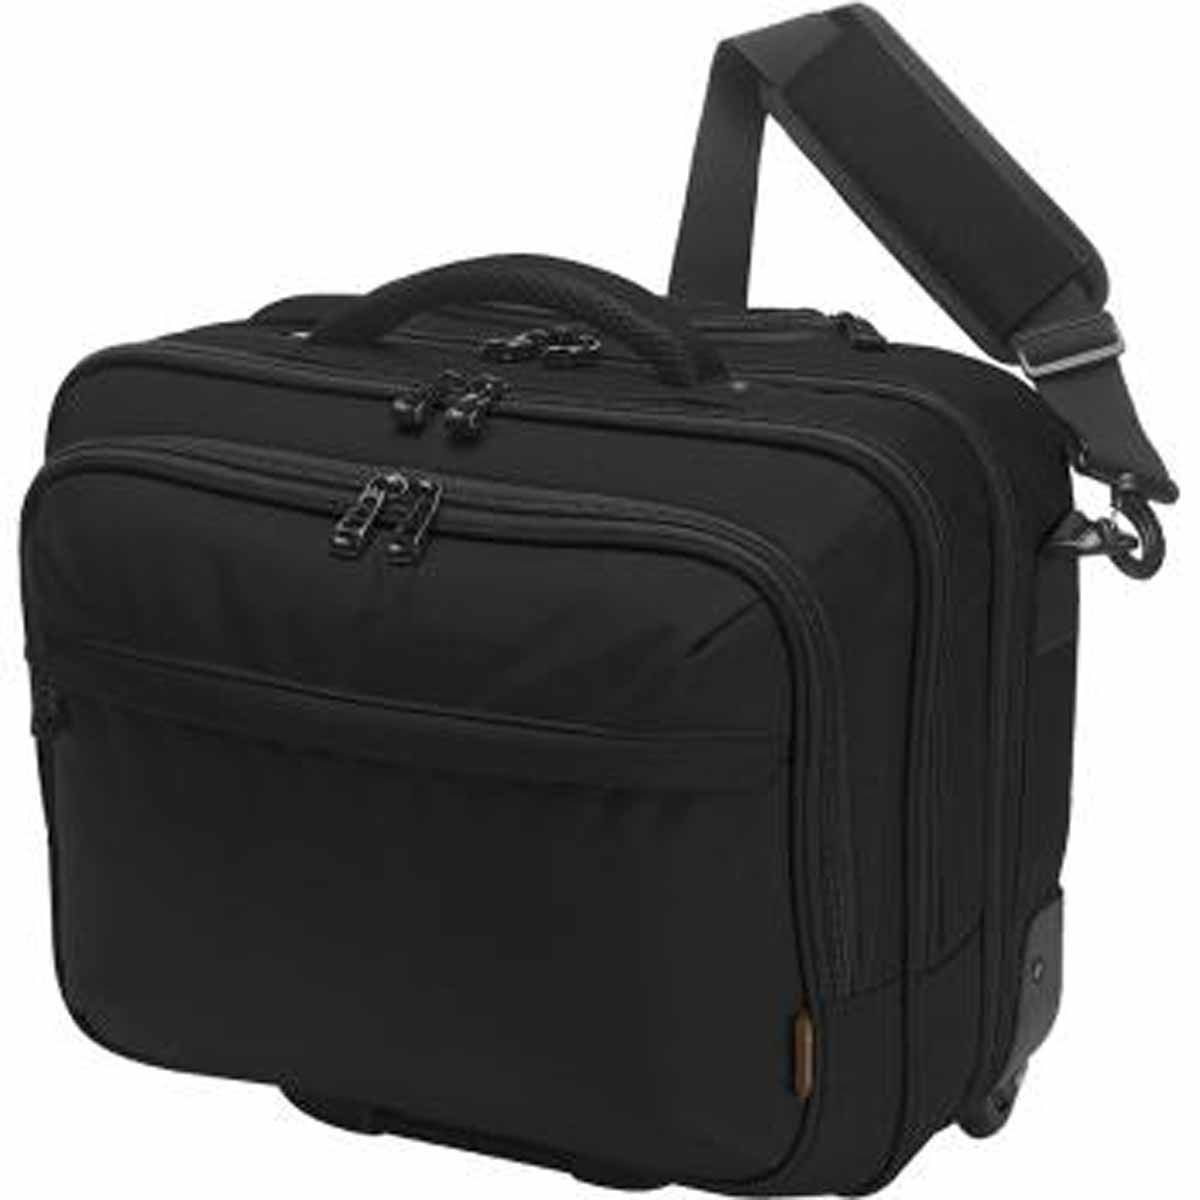 Homme Extra Large Big SPORTS GYM DUFFLE Holdall Sac de Voyage Travail Noir week-end